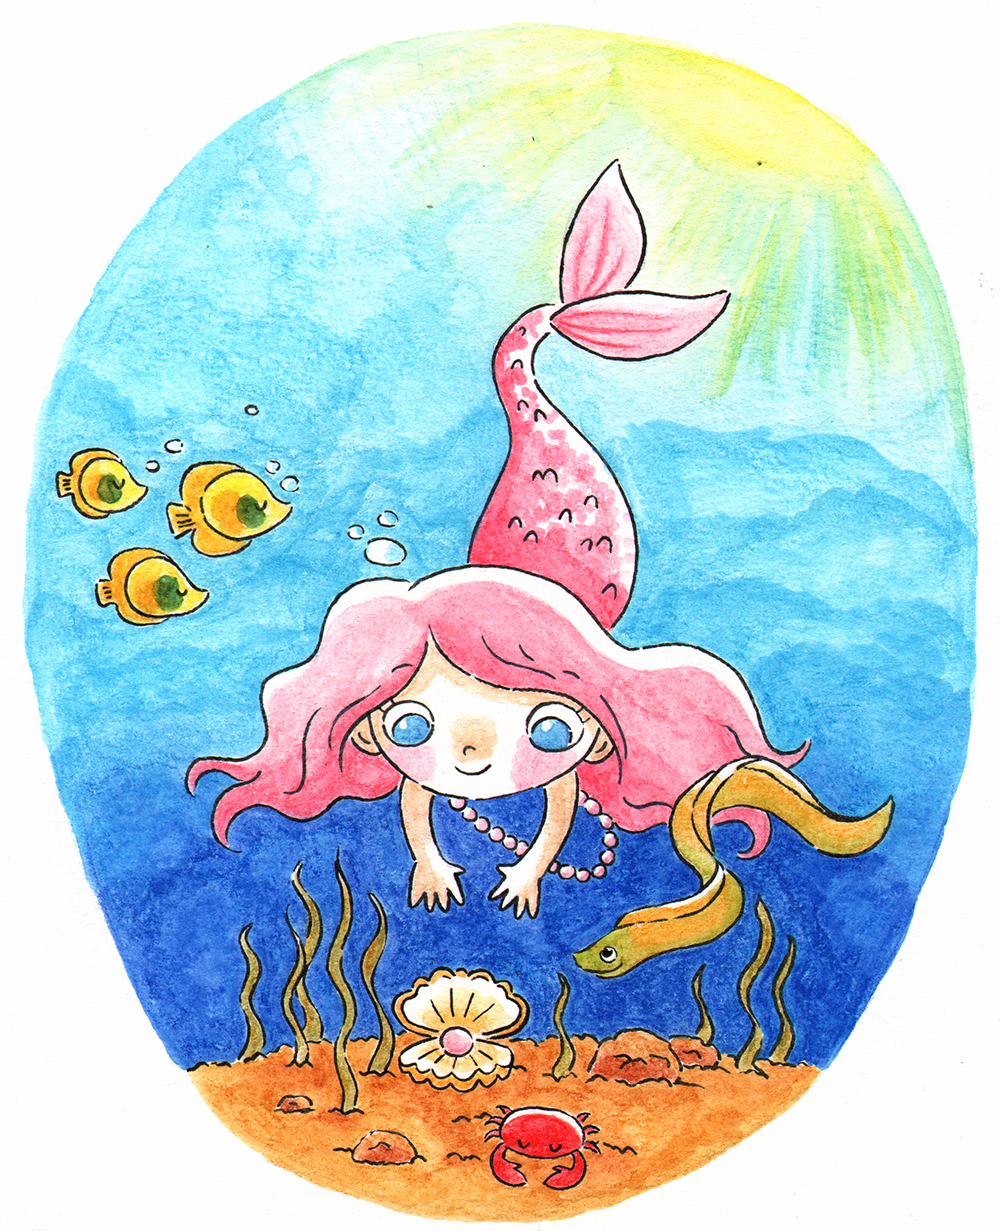 Finding Treasure  Pearl the mermaid finds a pearl. Watercolor pencils, 2018.